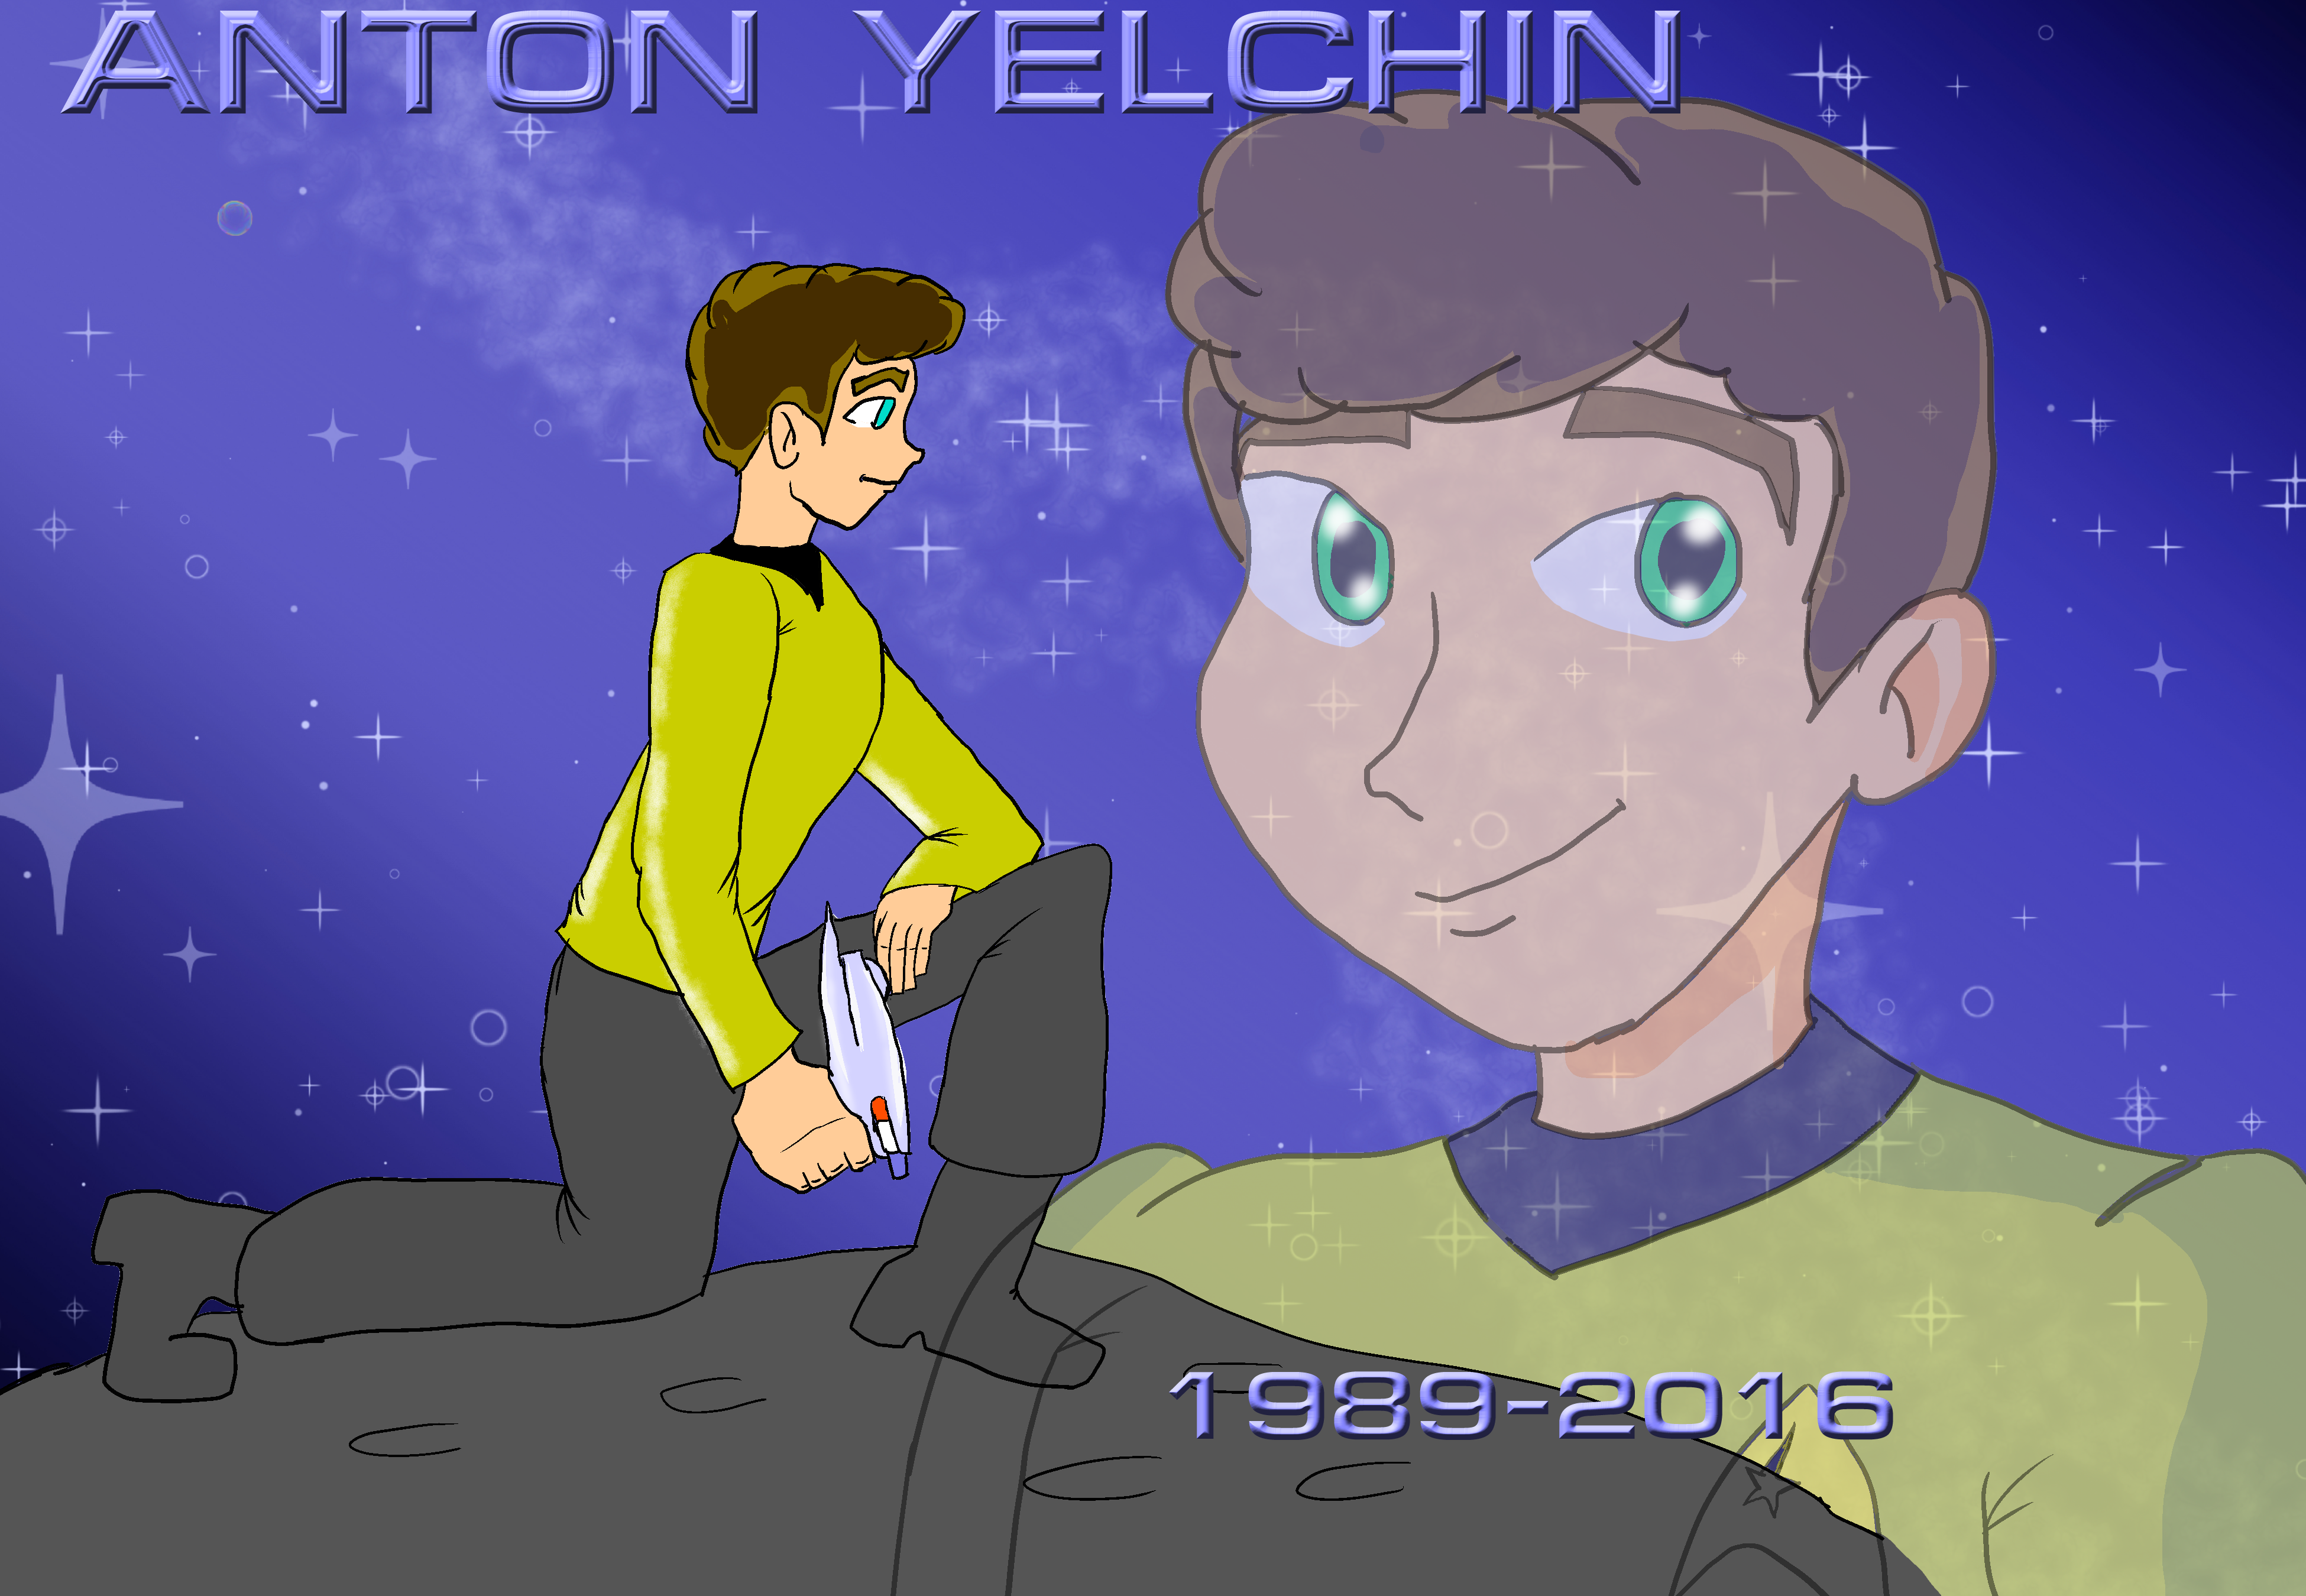 My Tribute to Anton Yelchin by KiteBoy1